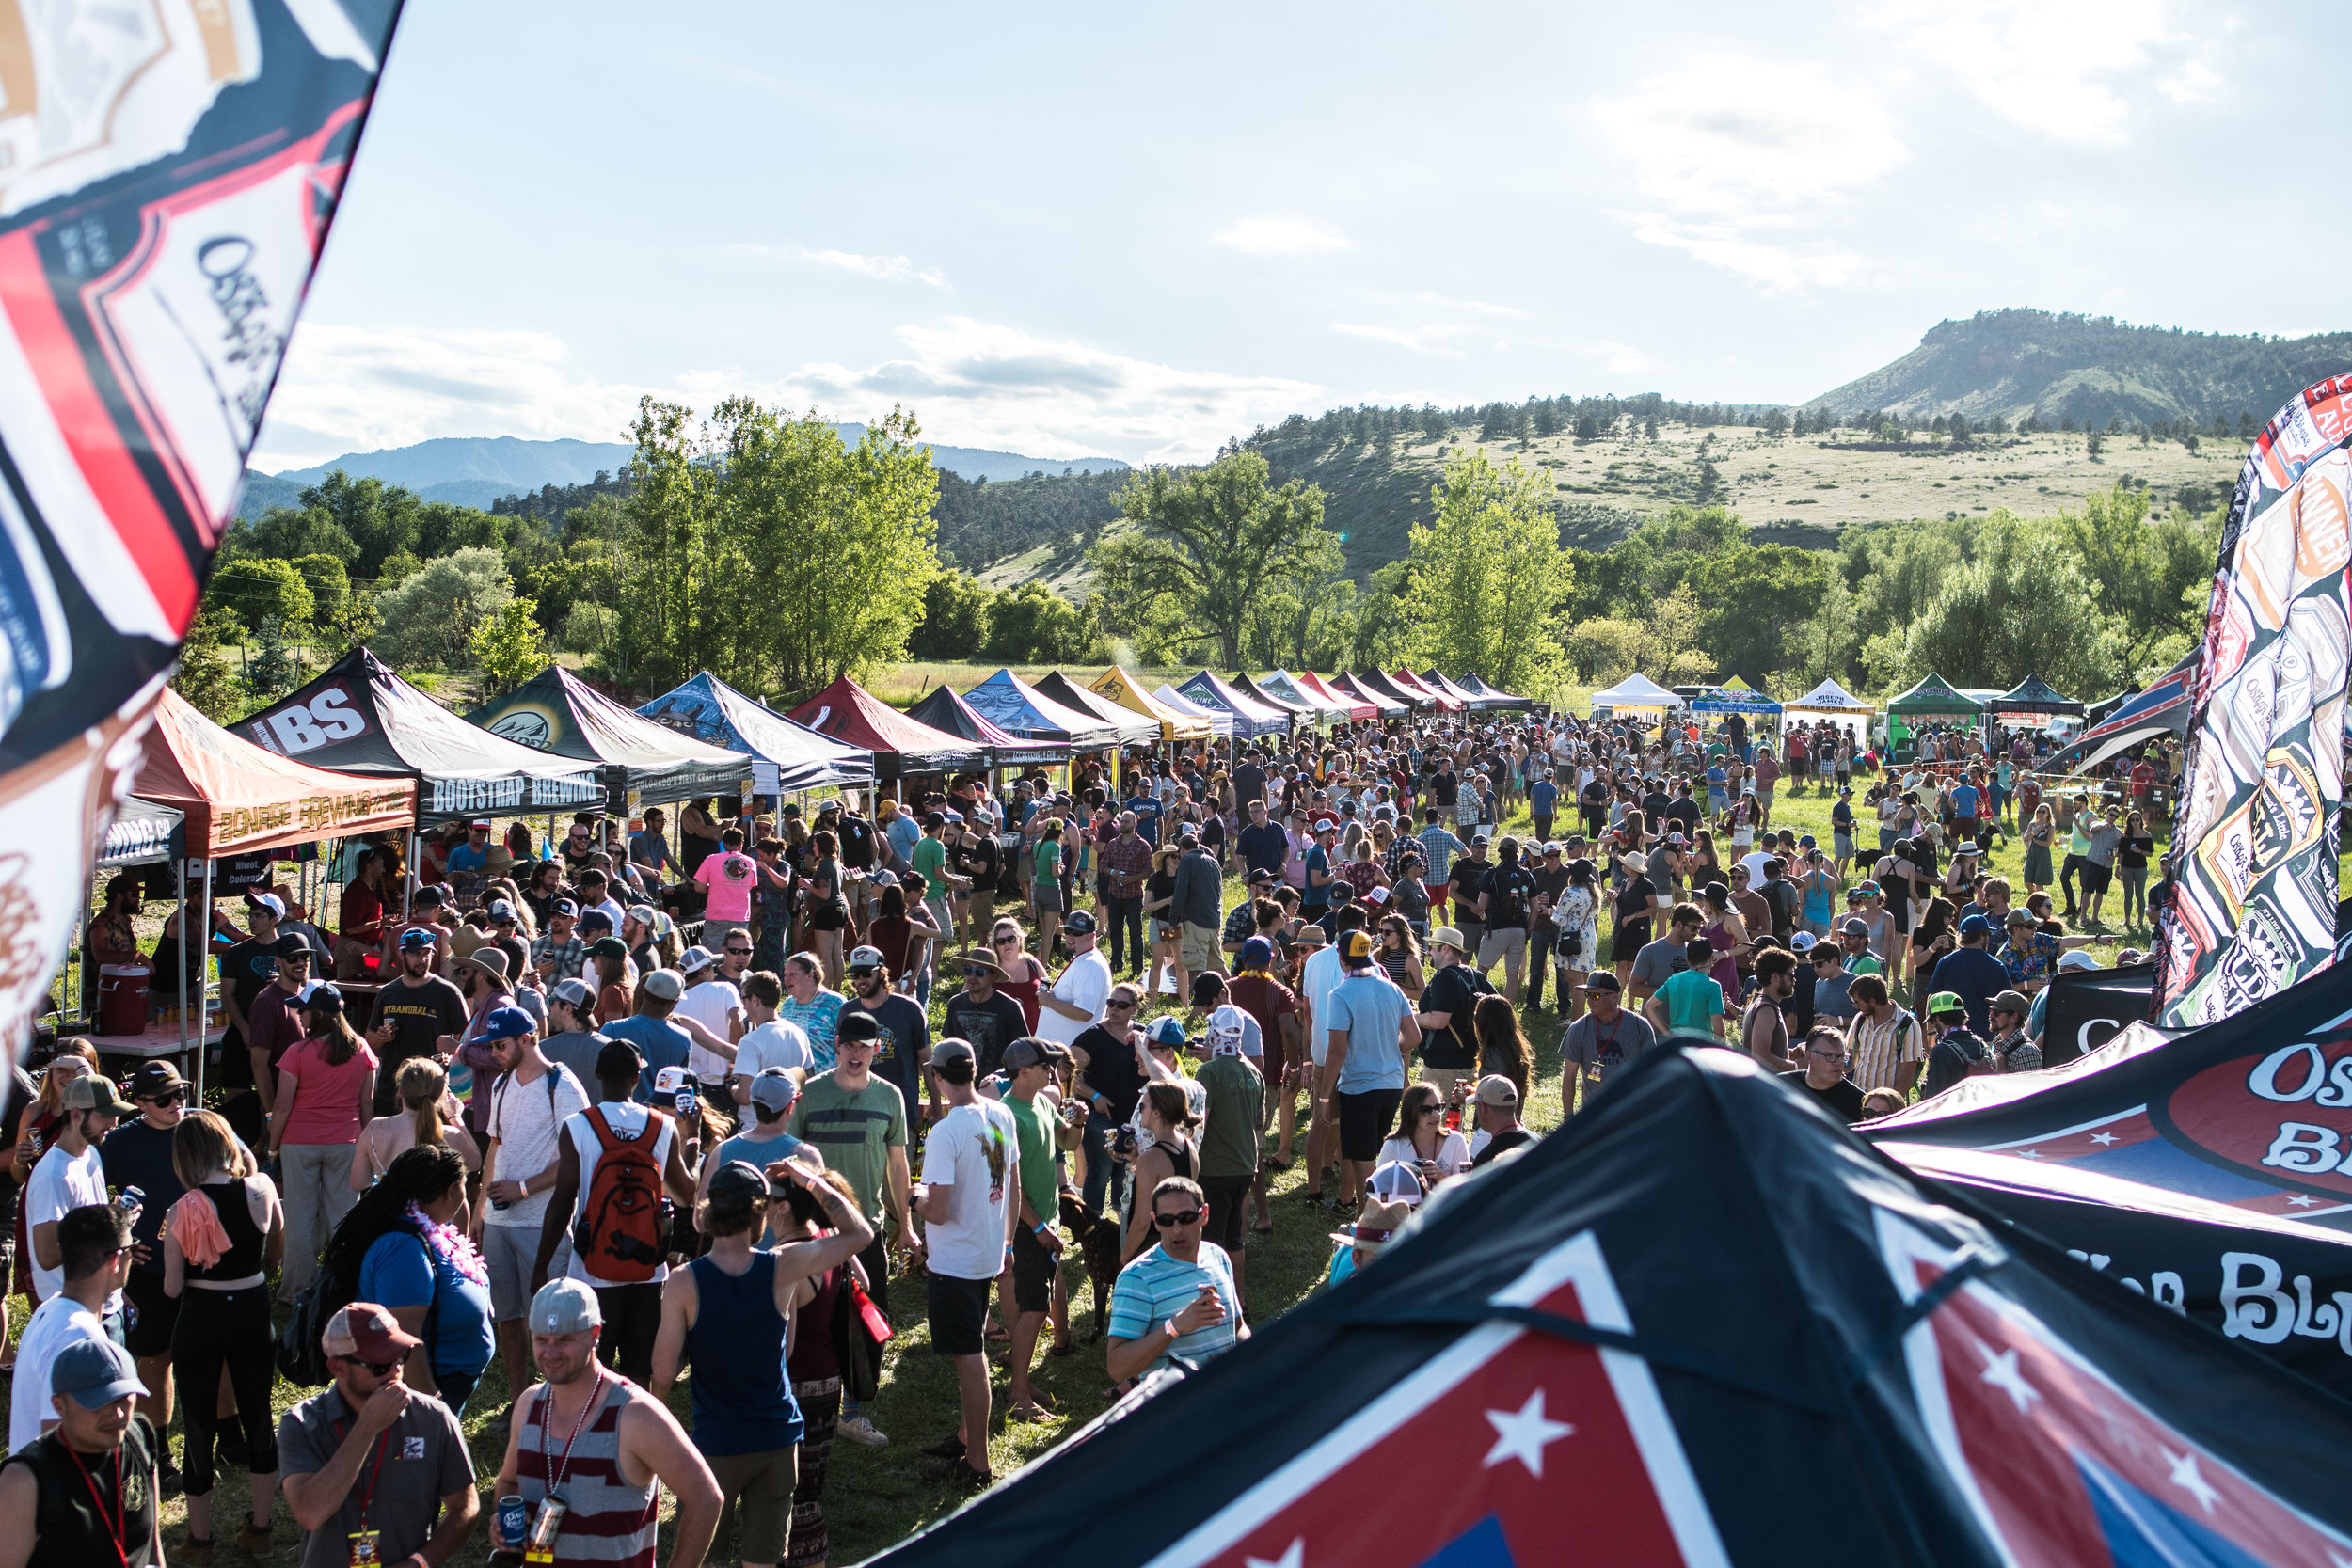 PARTY. - After the Trail Run Relay, stay for the Lyons Outdoor Games and Burning Can Beer Fest, the Greatest Beer Fest in all the Land""